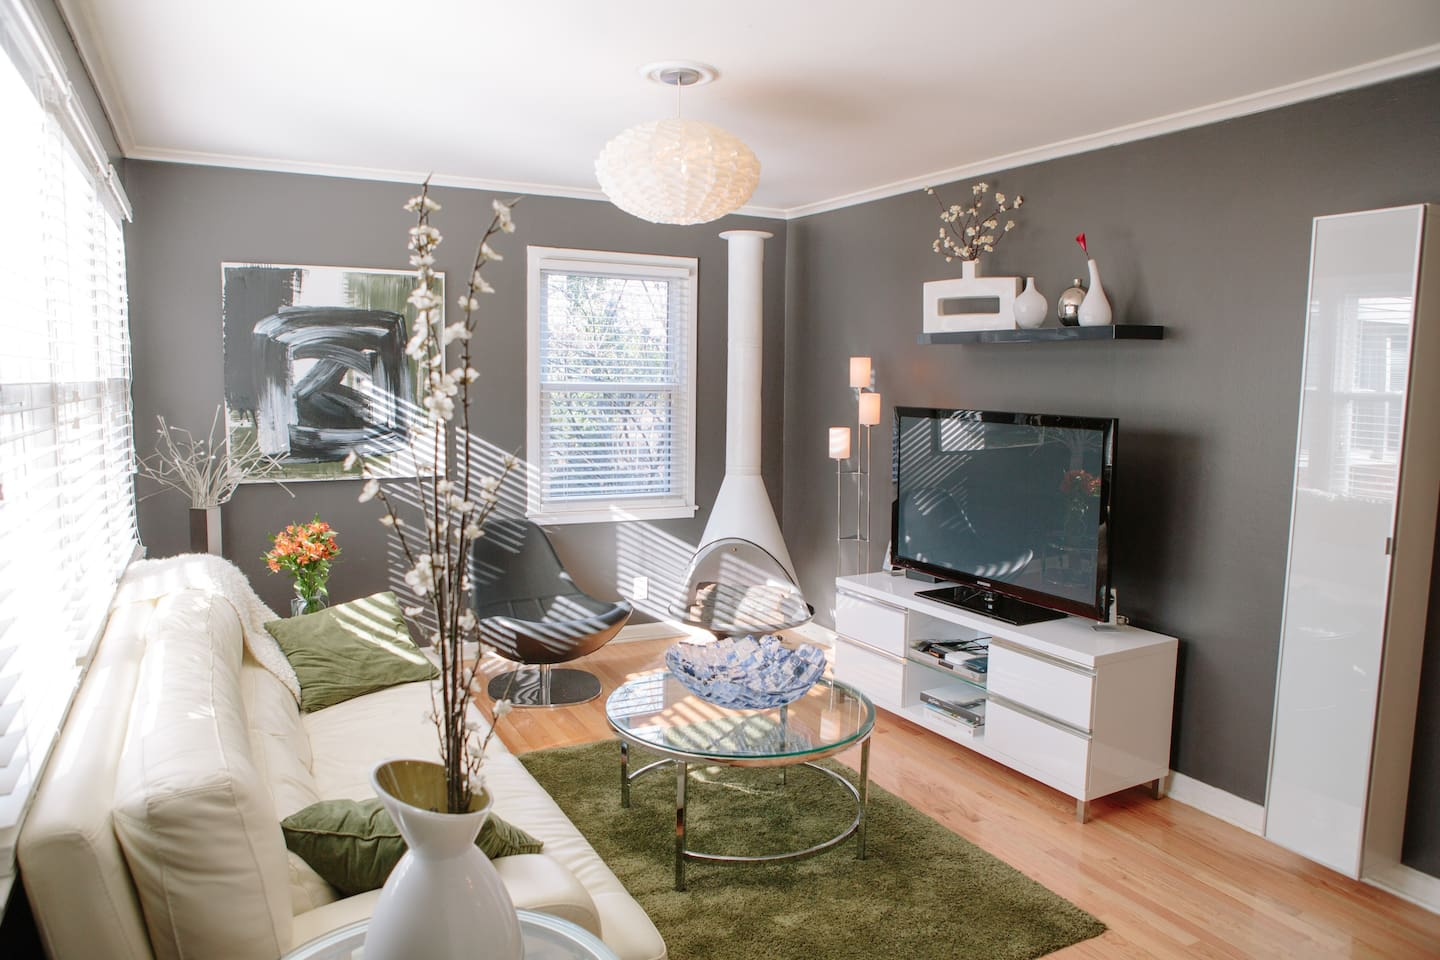 Best Airbnbs in Raleigh NC